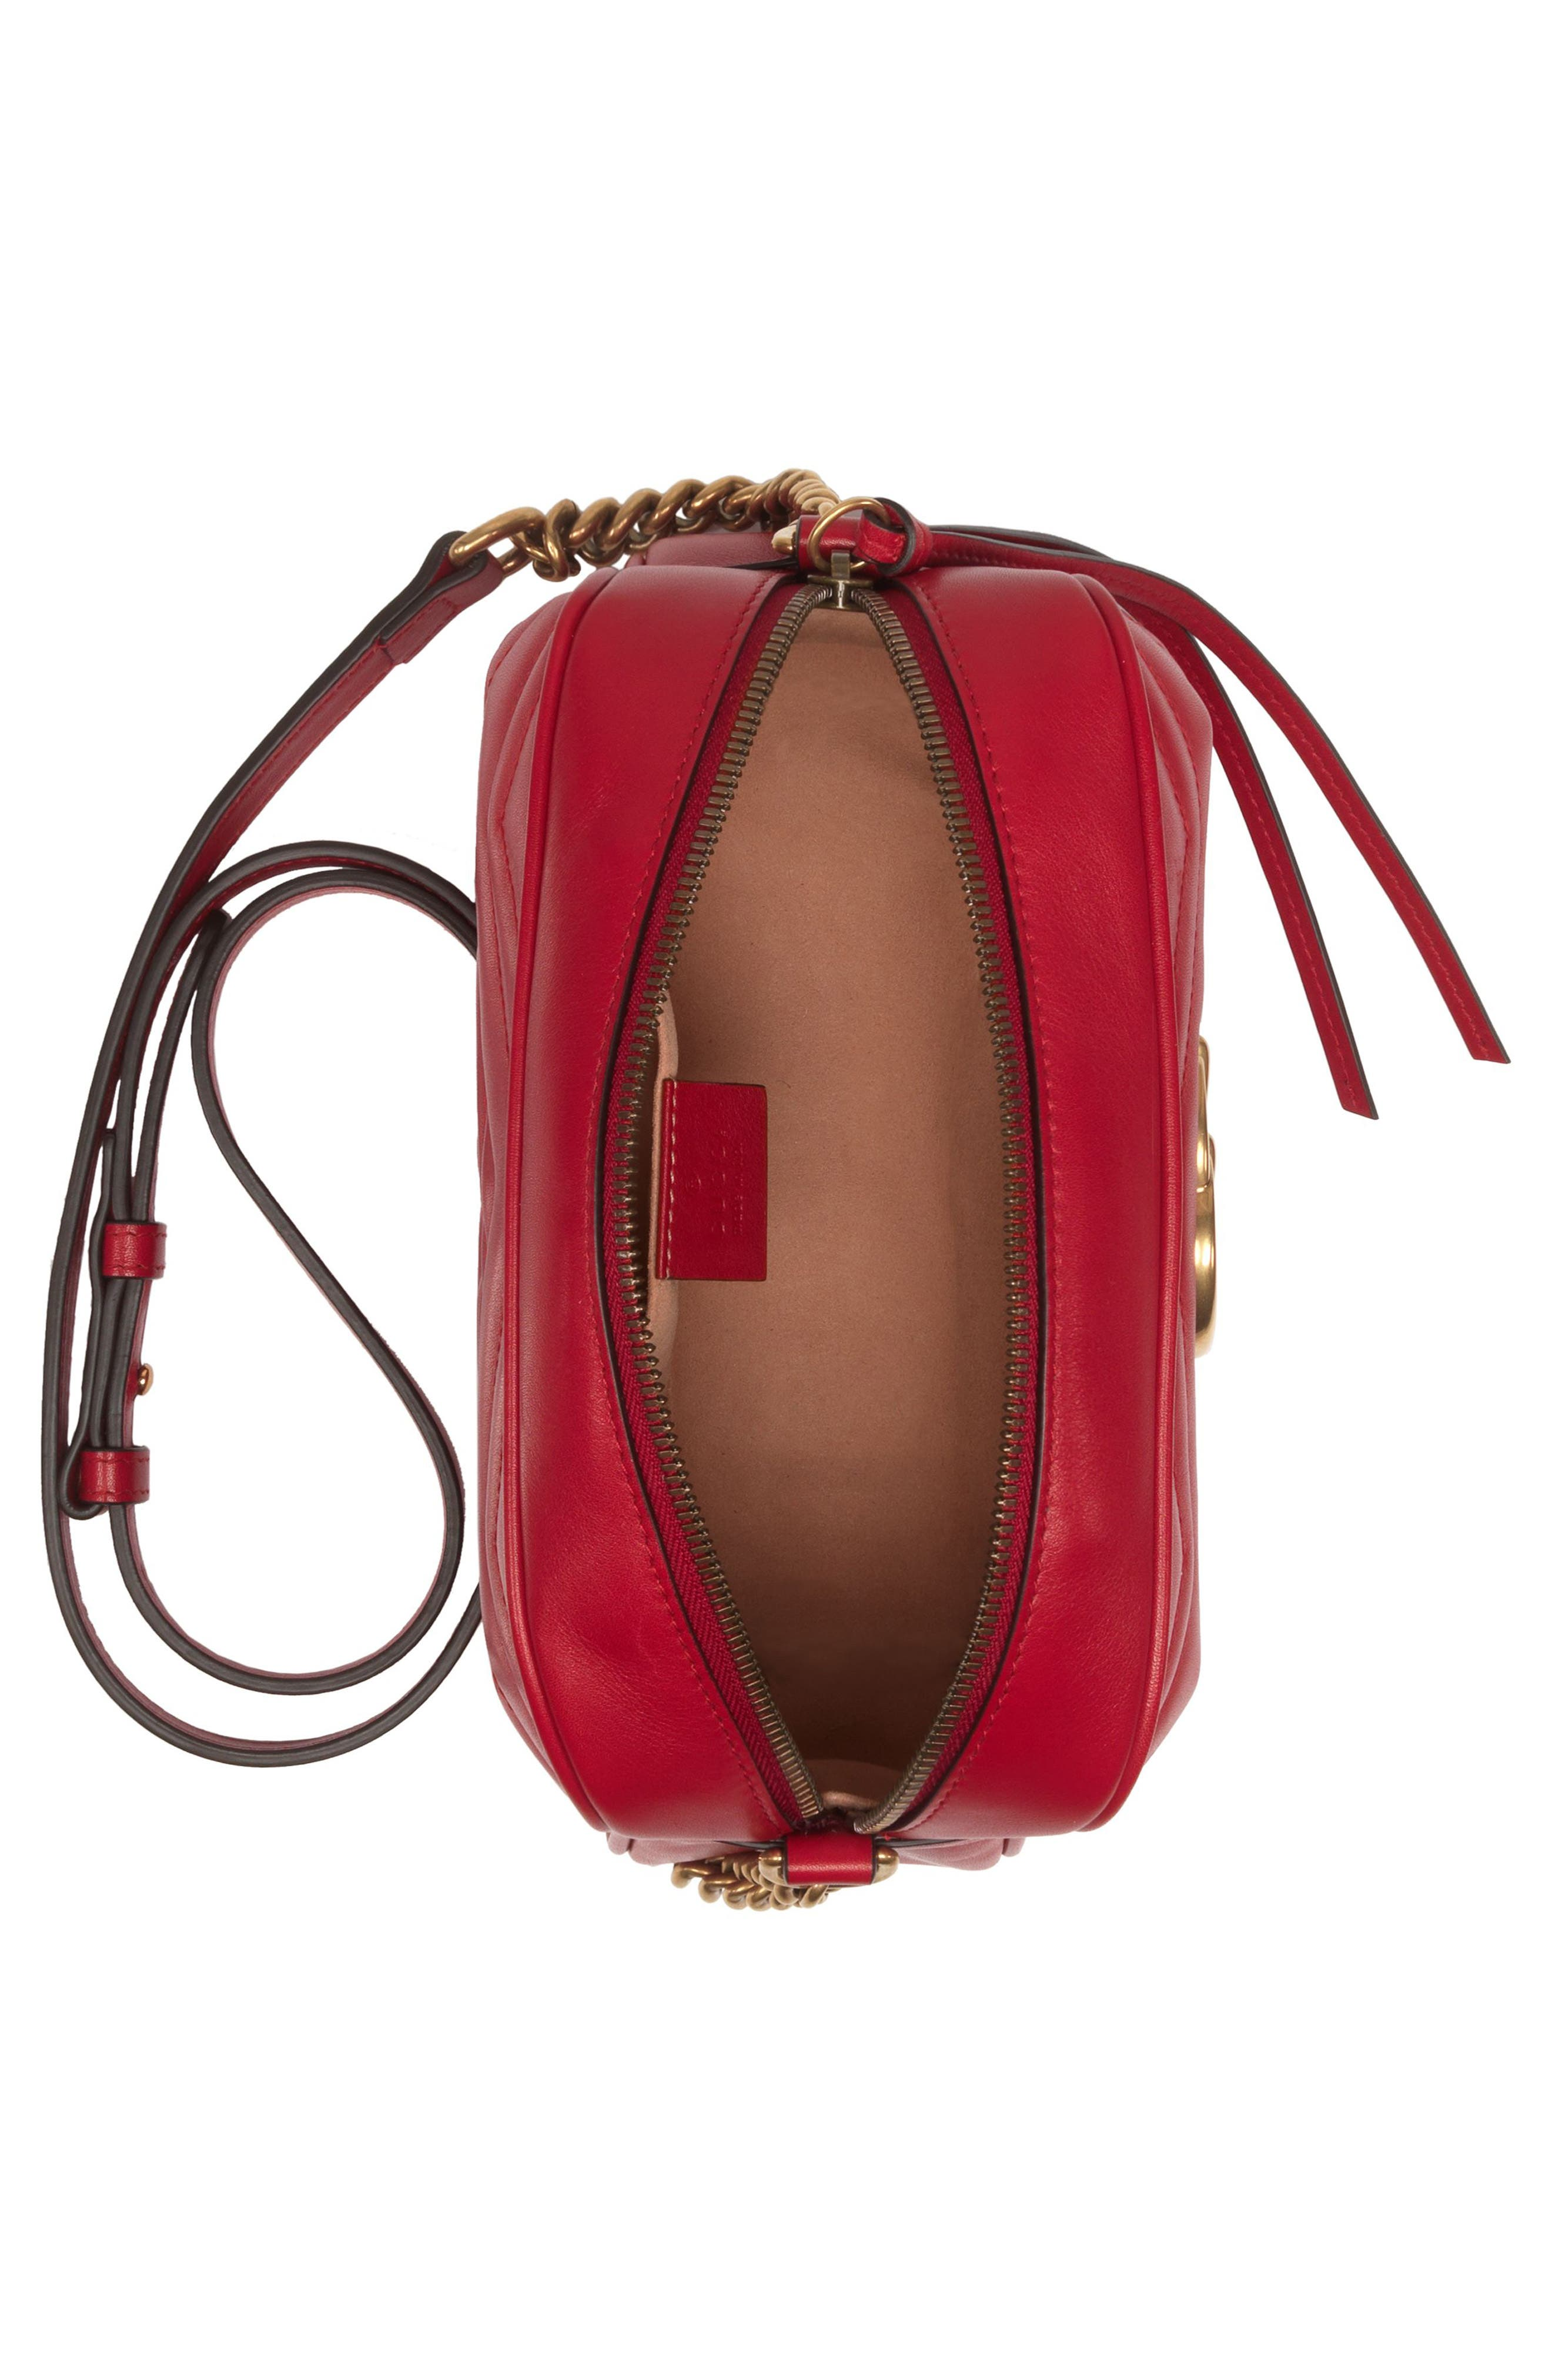 GUCCI,                             Small GG Marmont 2.0 Matelassé Leather Camera Bag,                             Alternate thumbnail 3, color,                             HIBISCUS RED/ HIBISCUS RED